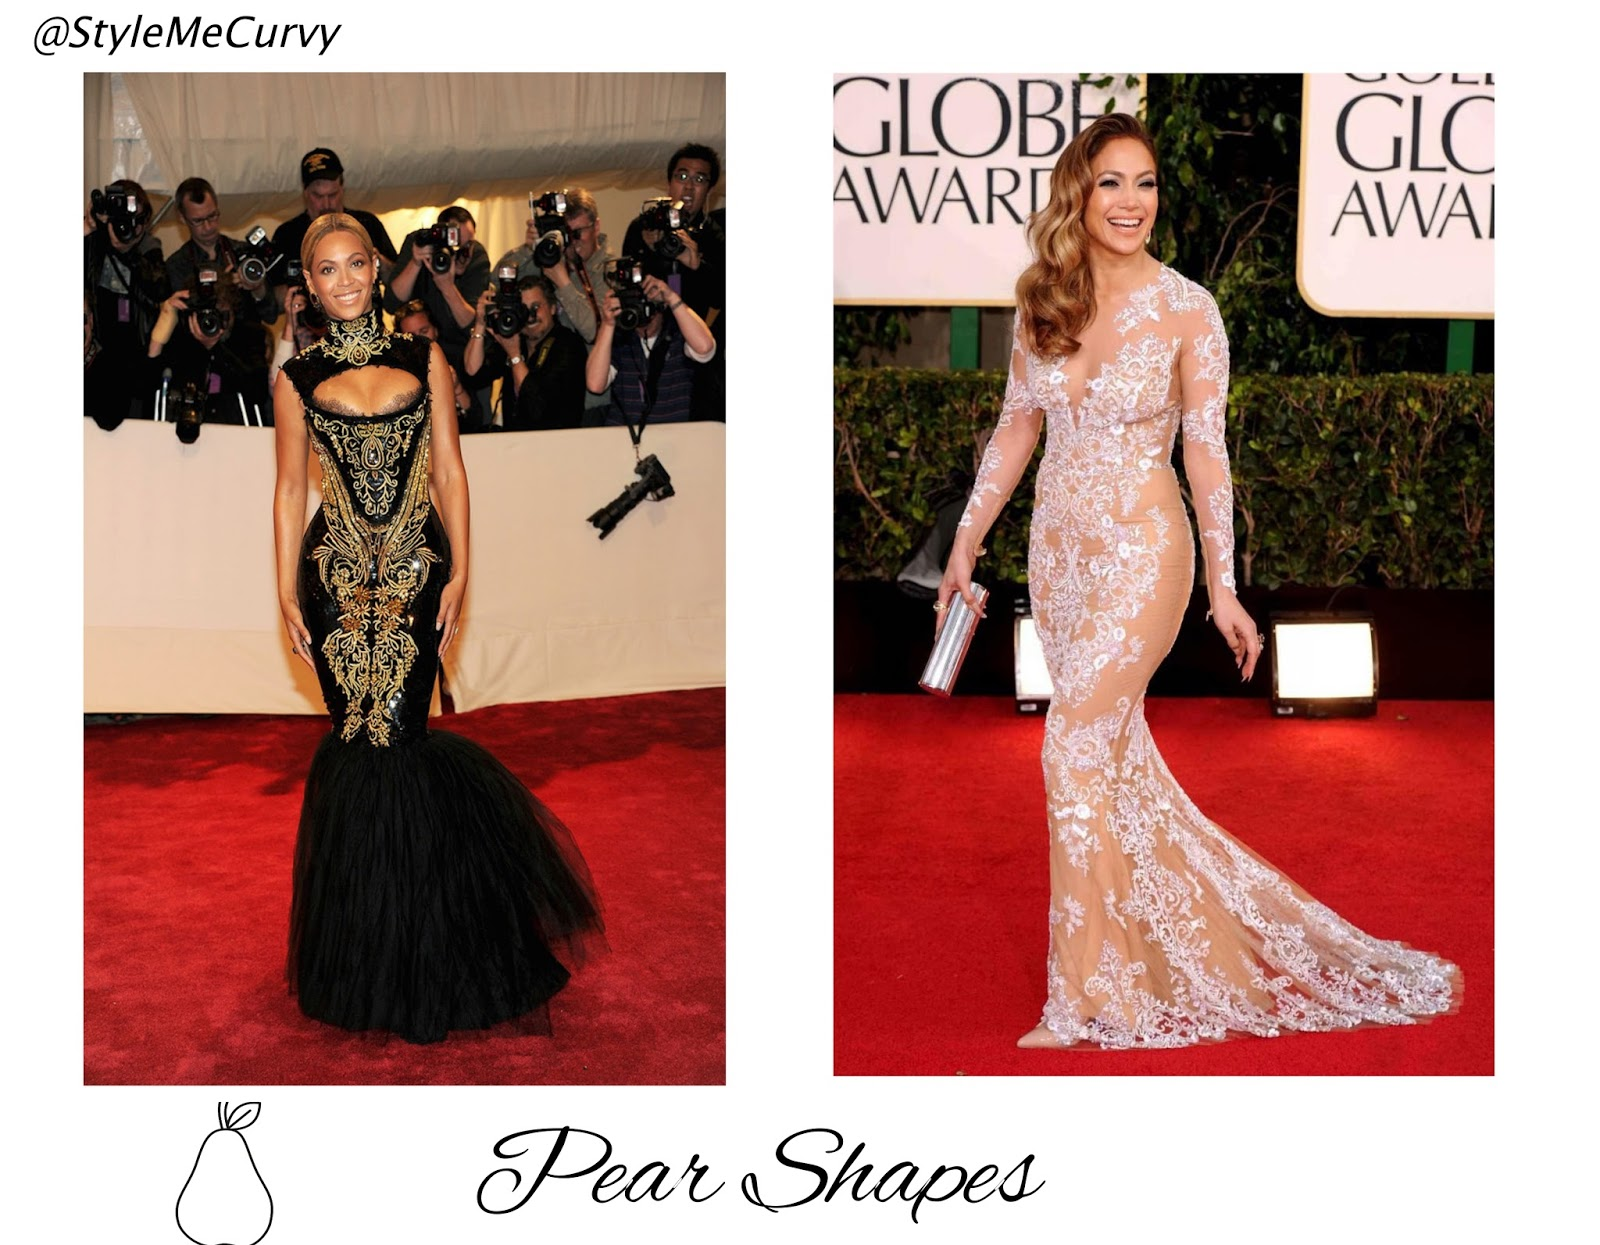 ae21459765b pear shapes - beyonce - jennifer lopez. - Your top ...